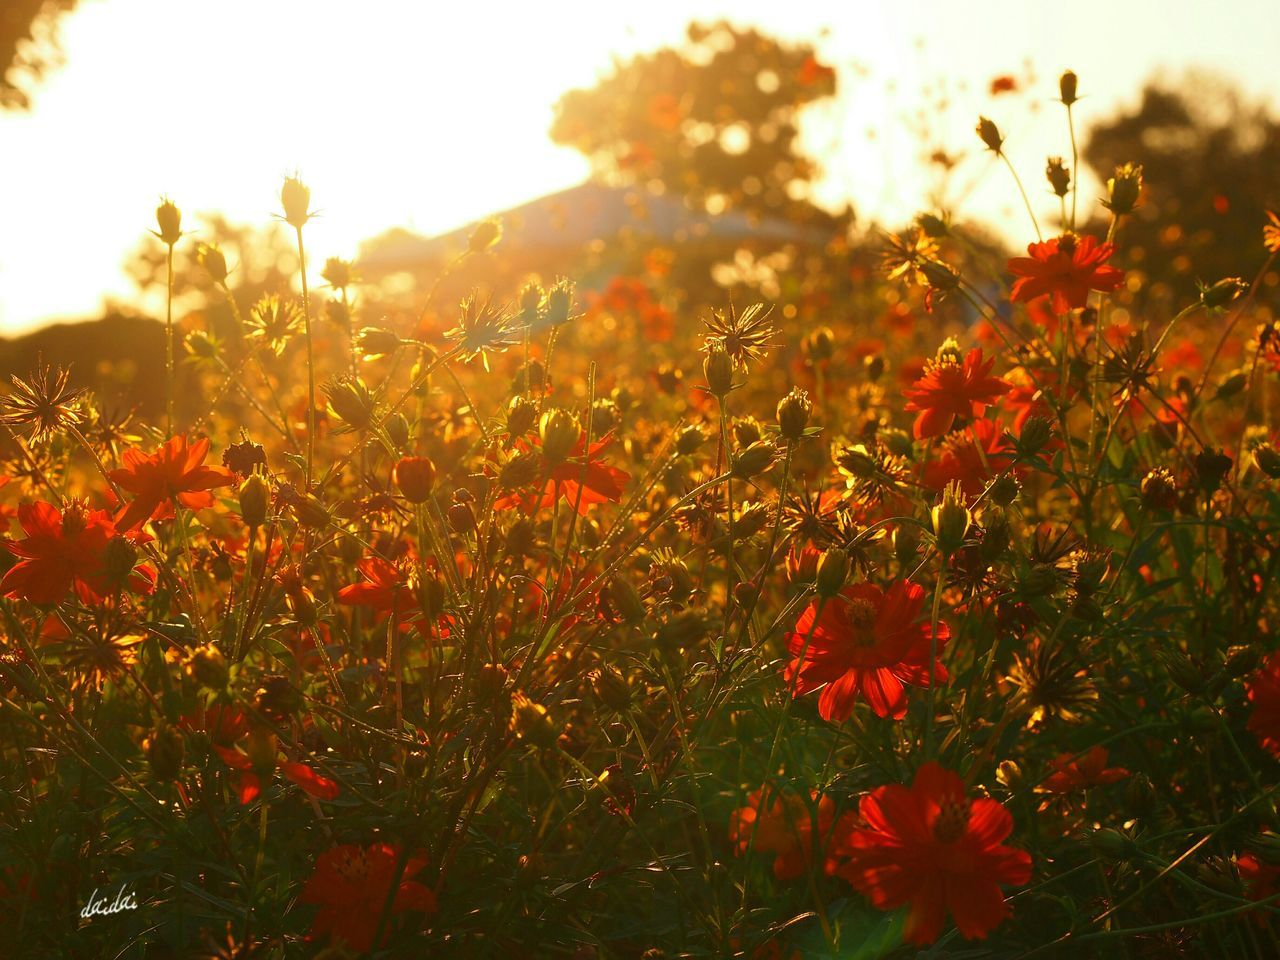 flower, growth, nature, plant, petal, beauty in nature, field, blooming, summer, freshness, meadow, poppy, red, no people, sunlight, flower head, fragility, outdoors, grass, day, close-up, sky